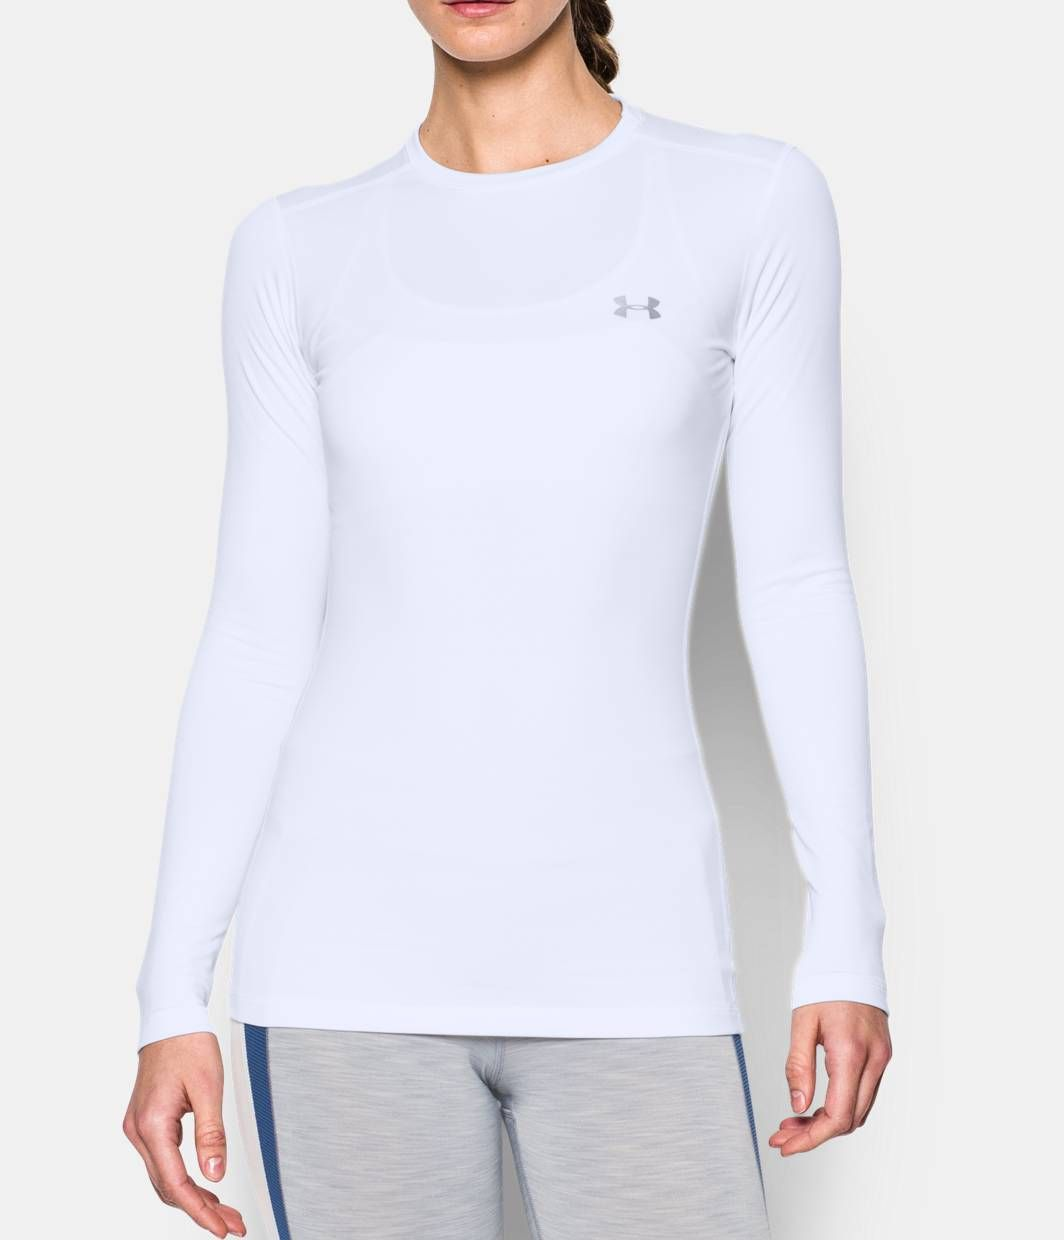 c17b59c6cc Women's ColdGear® Fitted Long Sleeve Crew | I For My Kids | Long ...